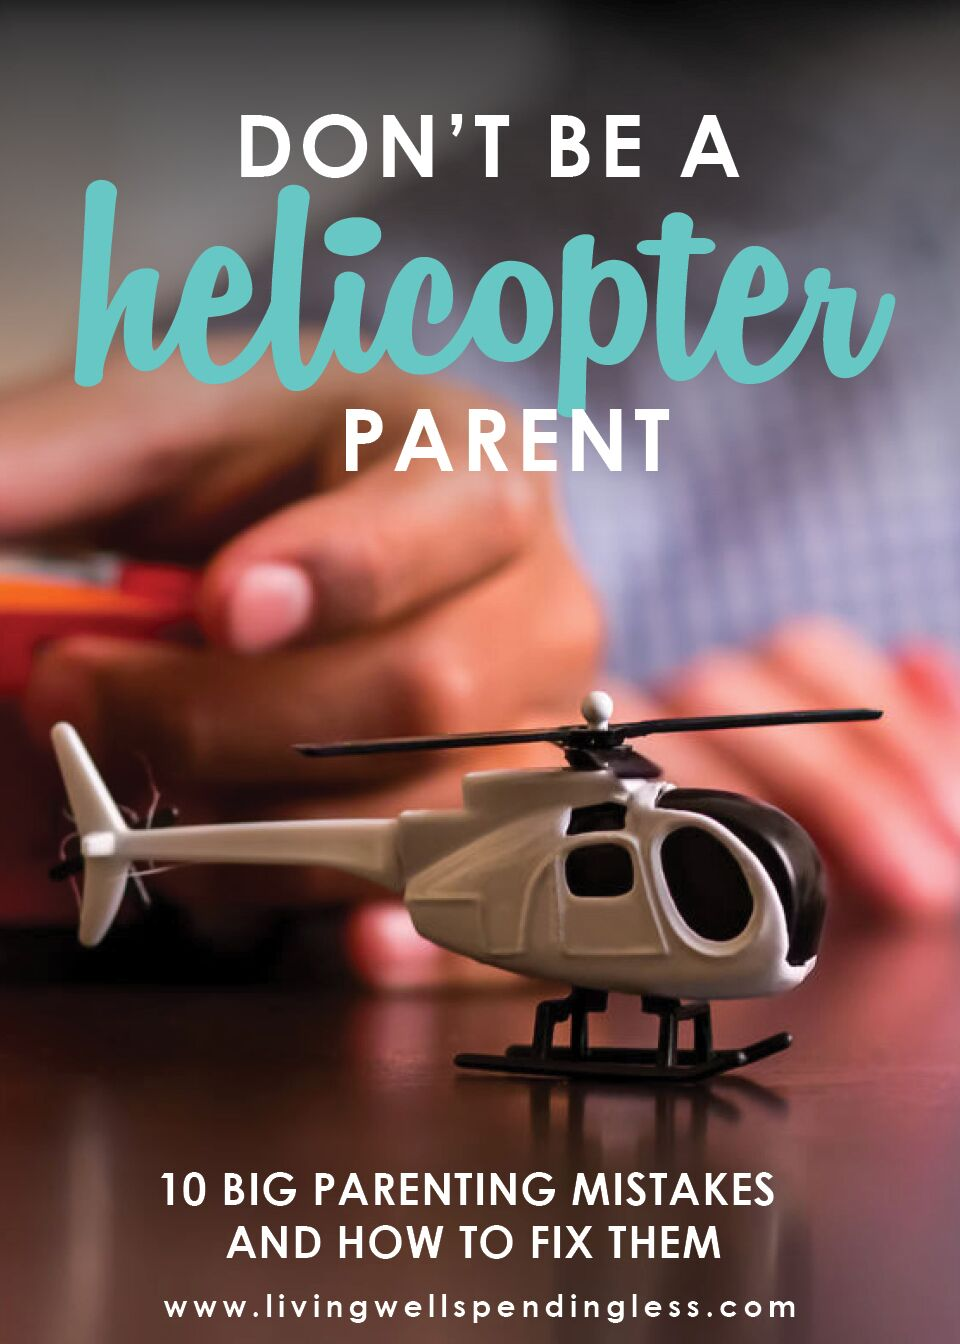 Don't Be a Helicopter Parent